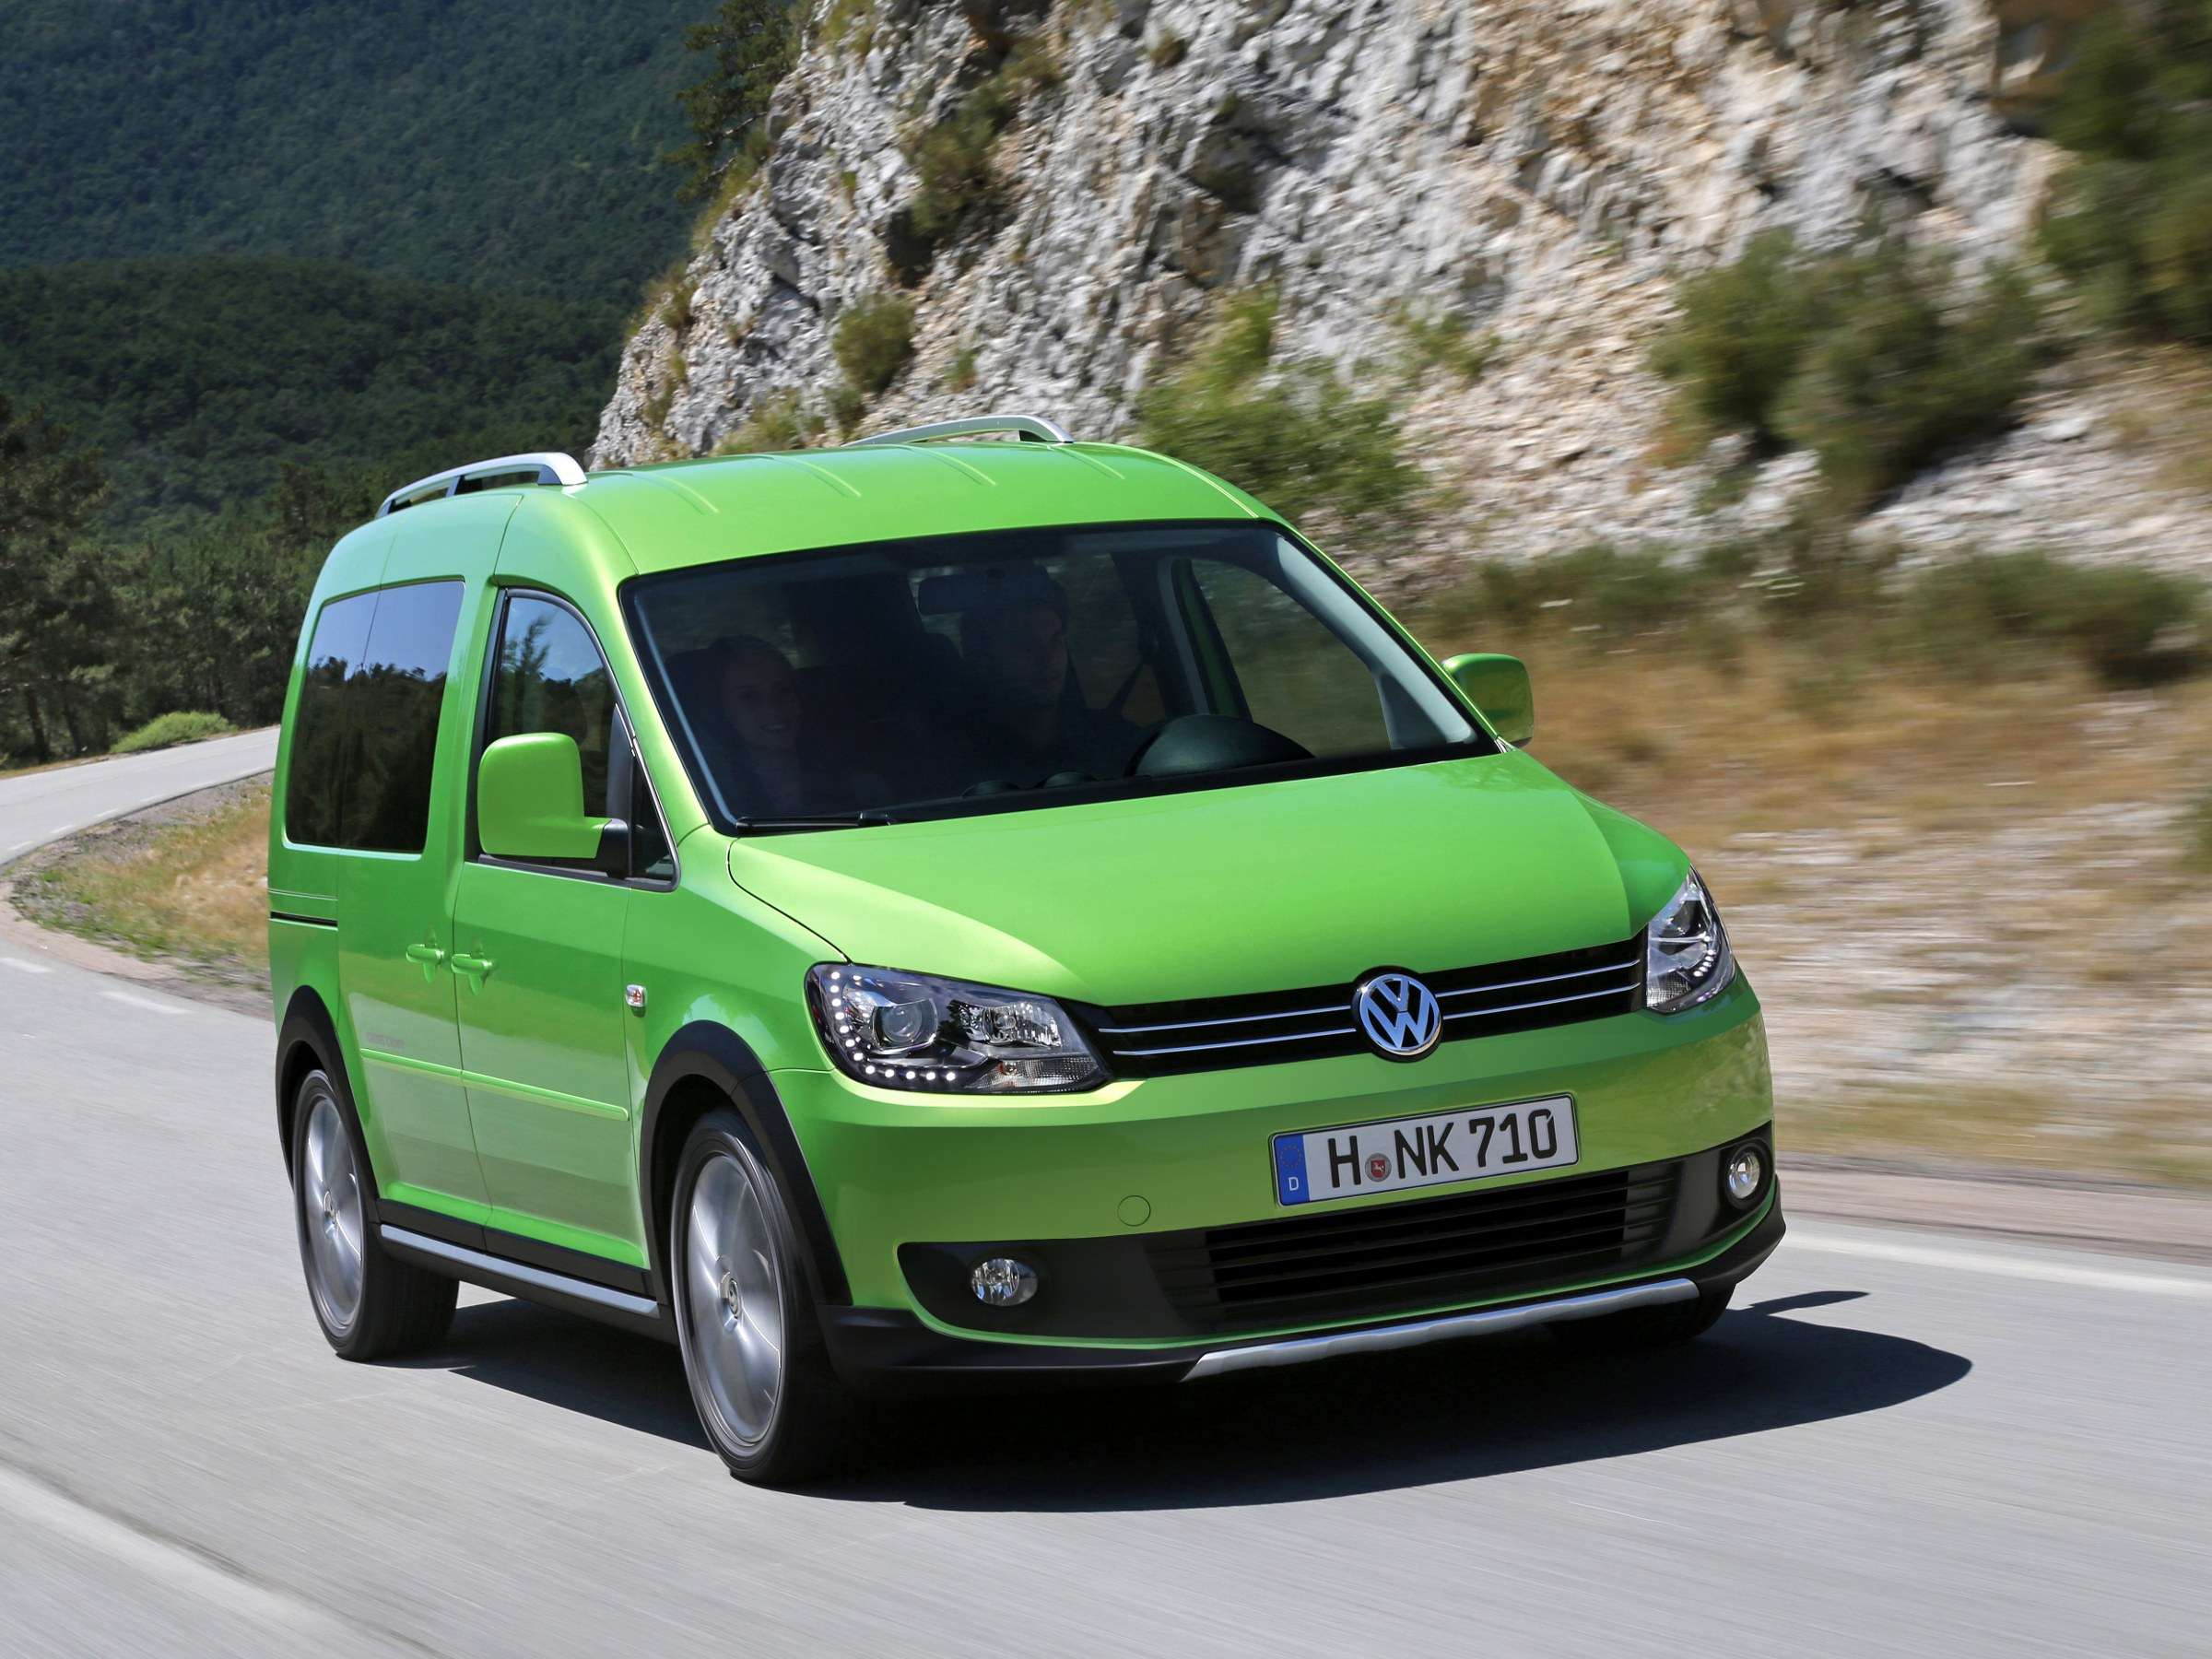 Фото автомобиля Volkswagen Cross Caddy минивэн